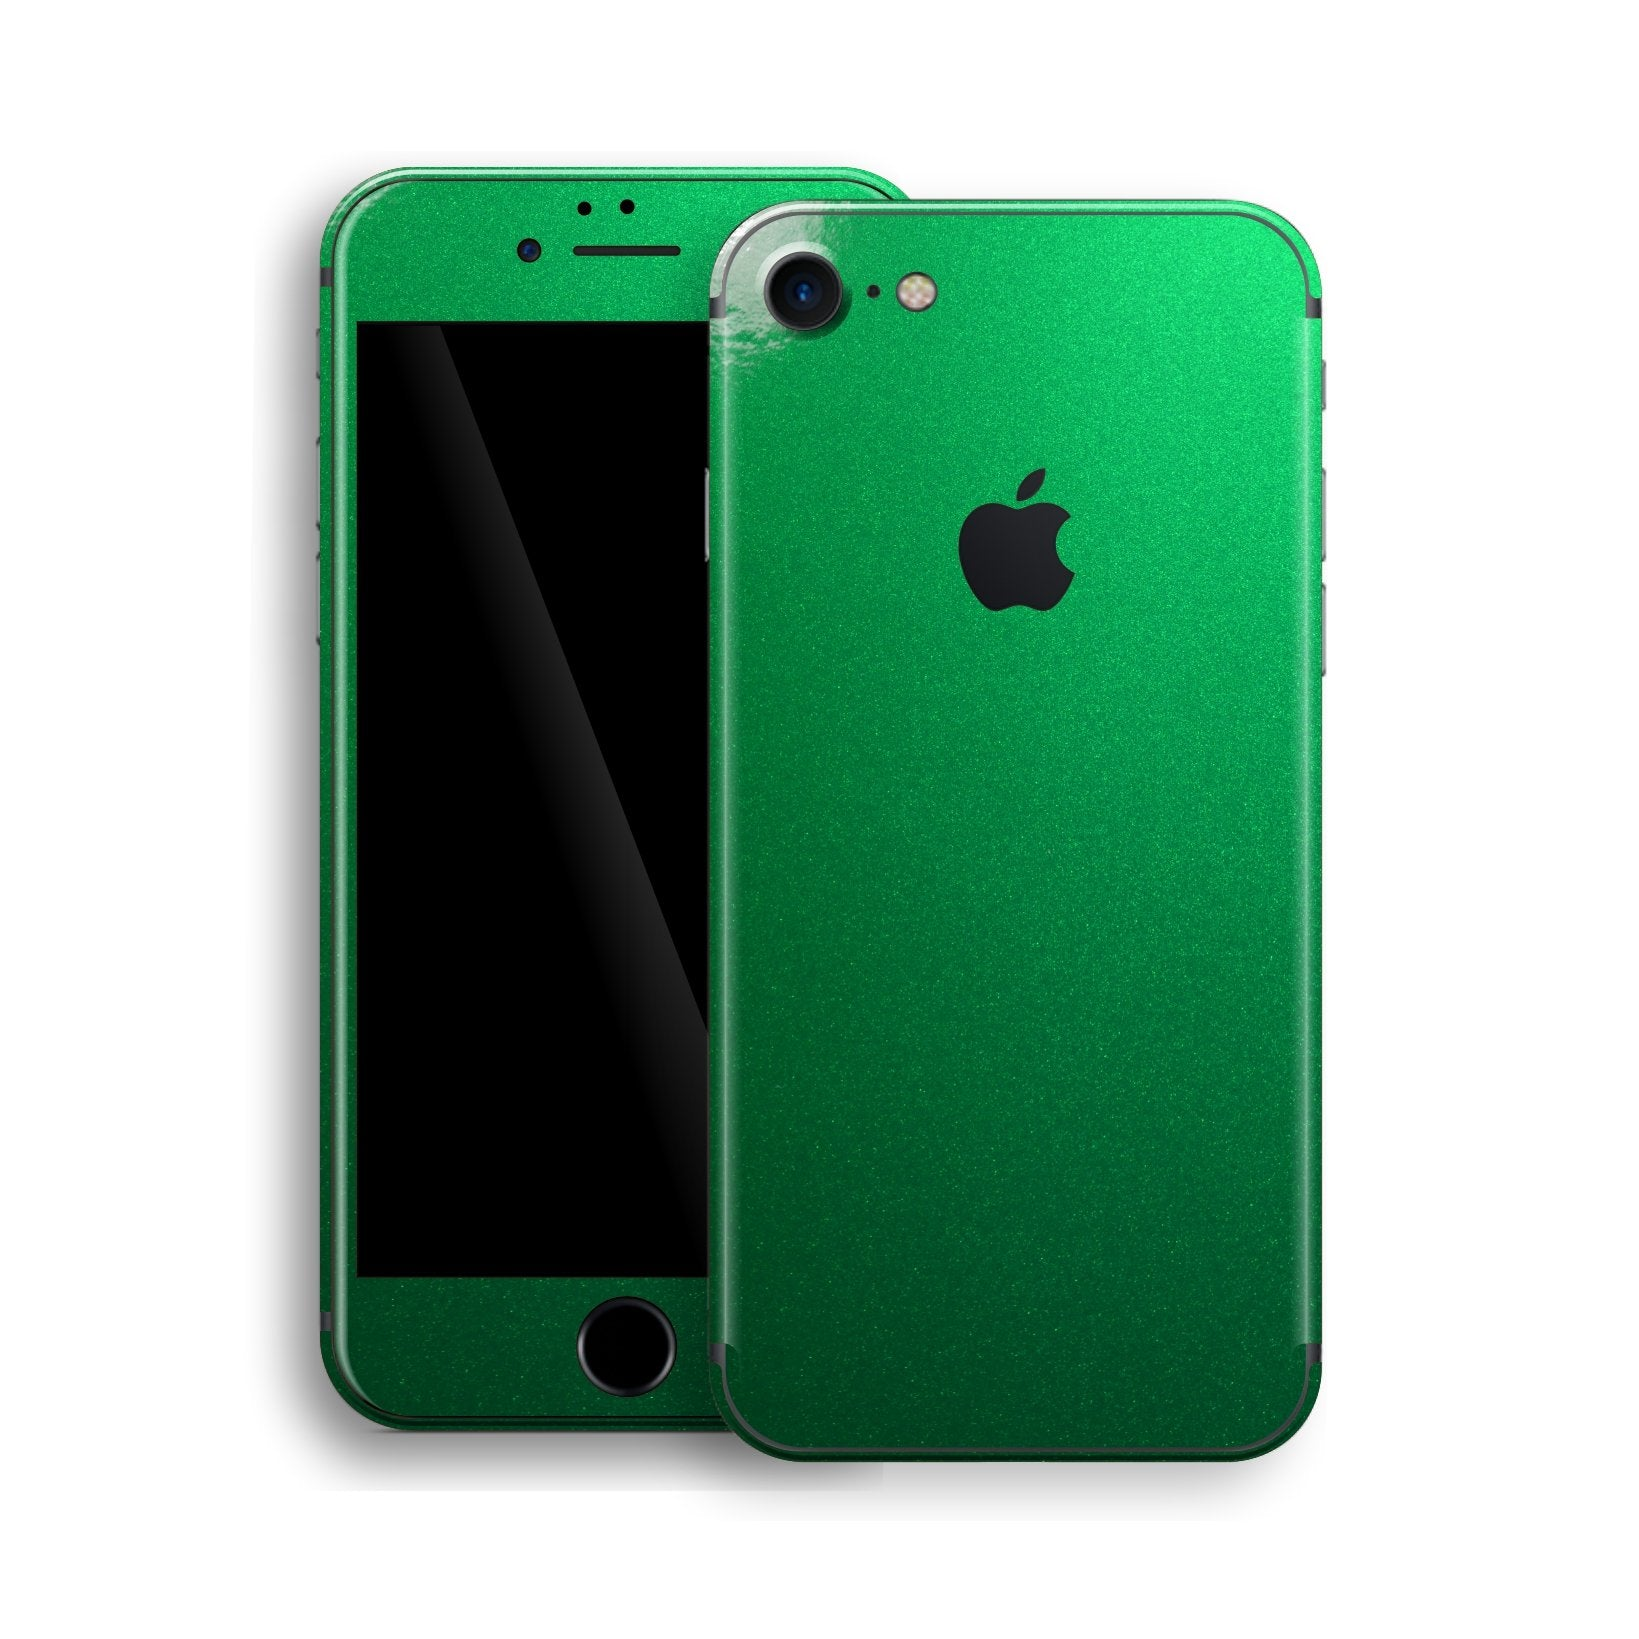 iPhone 8 Viper Green Tuning Metallic Skin, Wrap, Decal, Protector, Cover by EasySkinz | EasySkinz.com